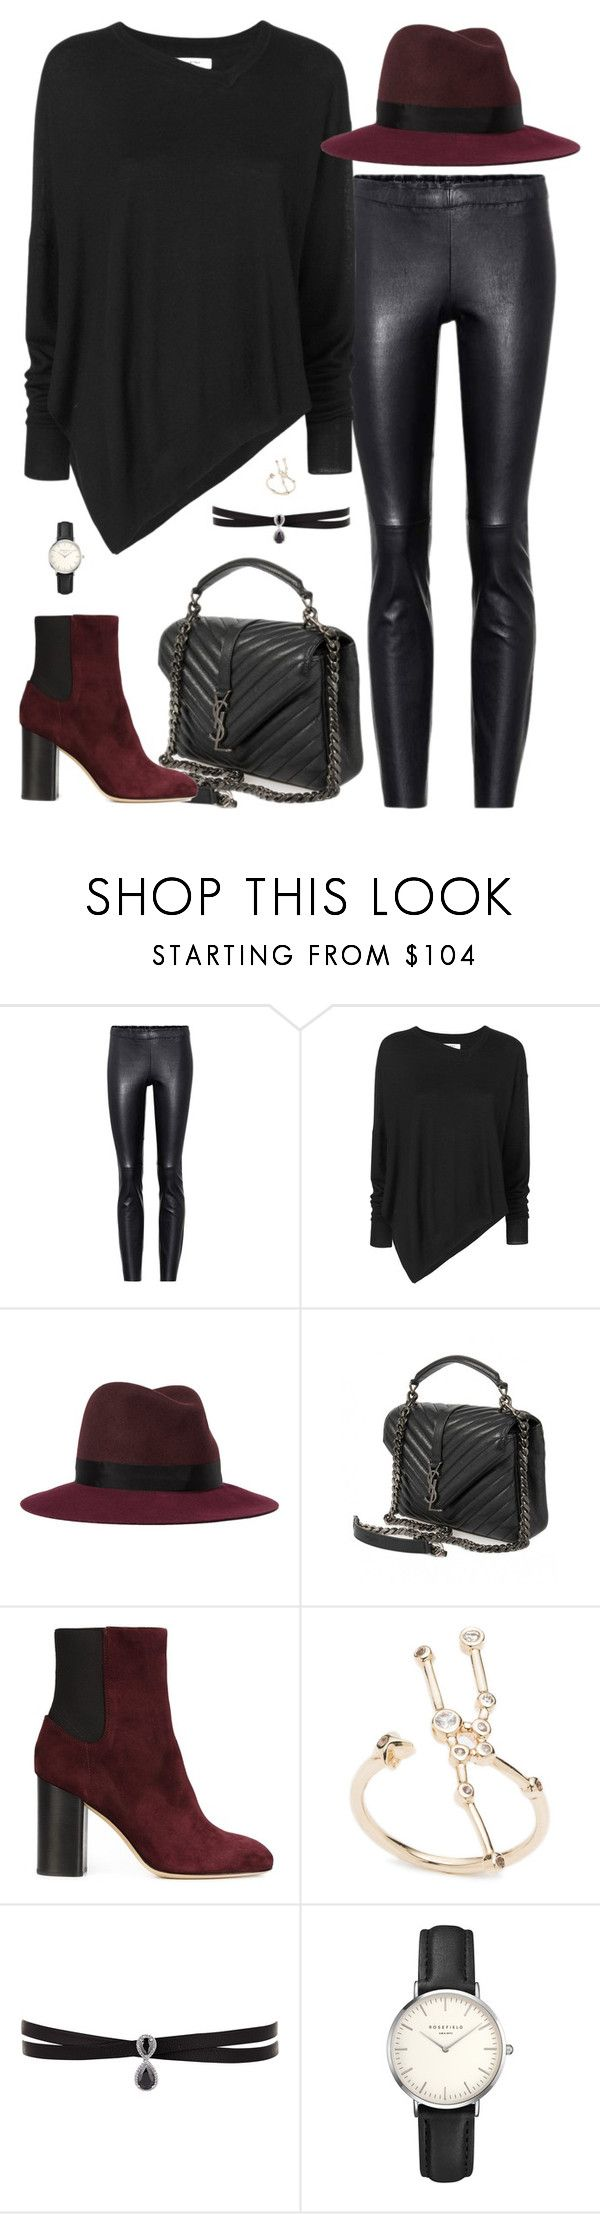 """Untitled #2969"" by briarachele on Polyvore featuring STOULS, Étoile Isabel Marant, rag & bone, Yves Saint Laurent, Fallon and ROSEFIELD"